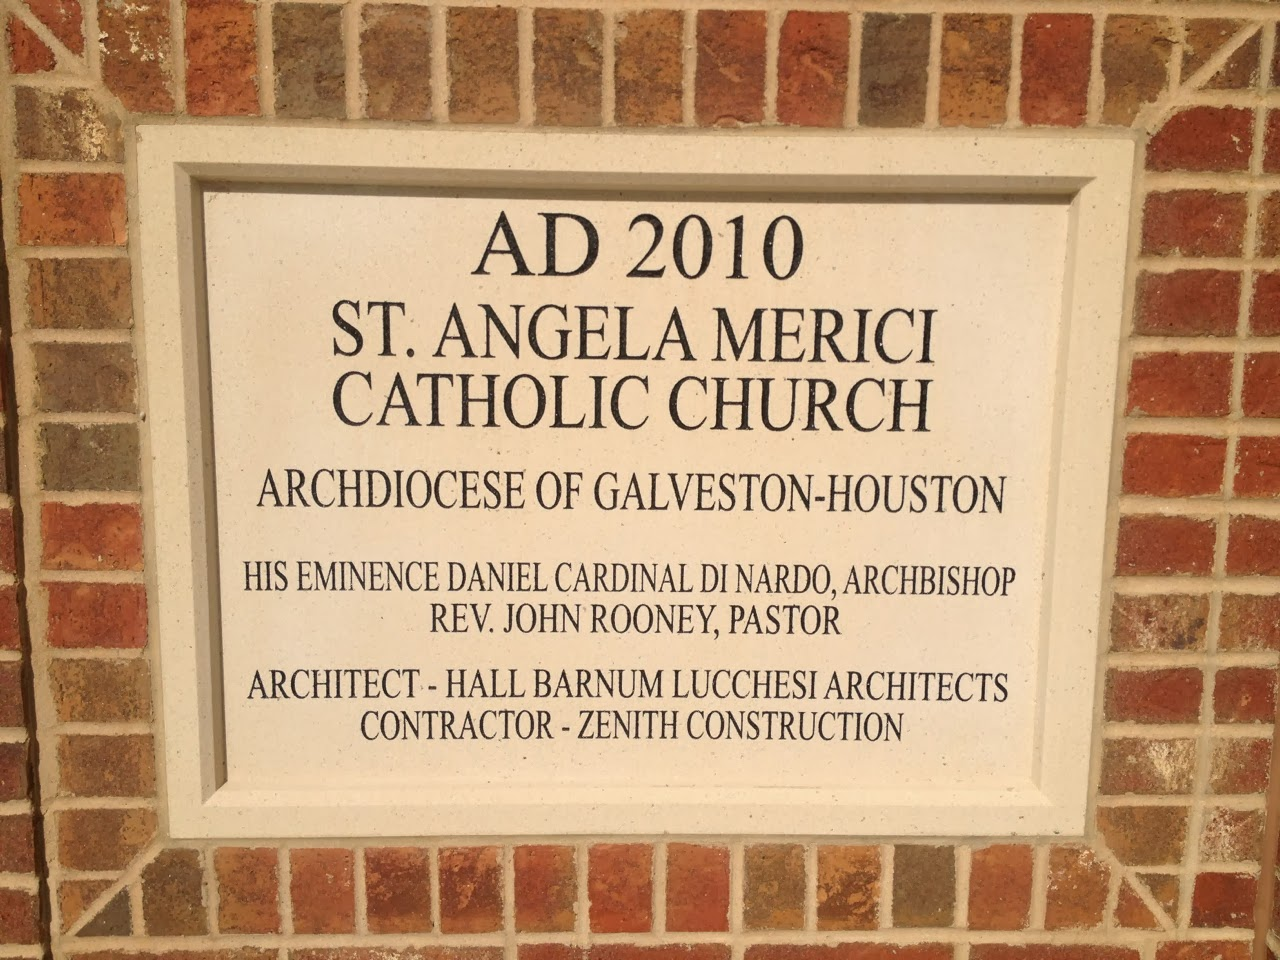 Cornerstone of St. Angela Merici Catholic Church in Missouri City, TX